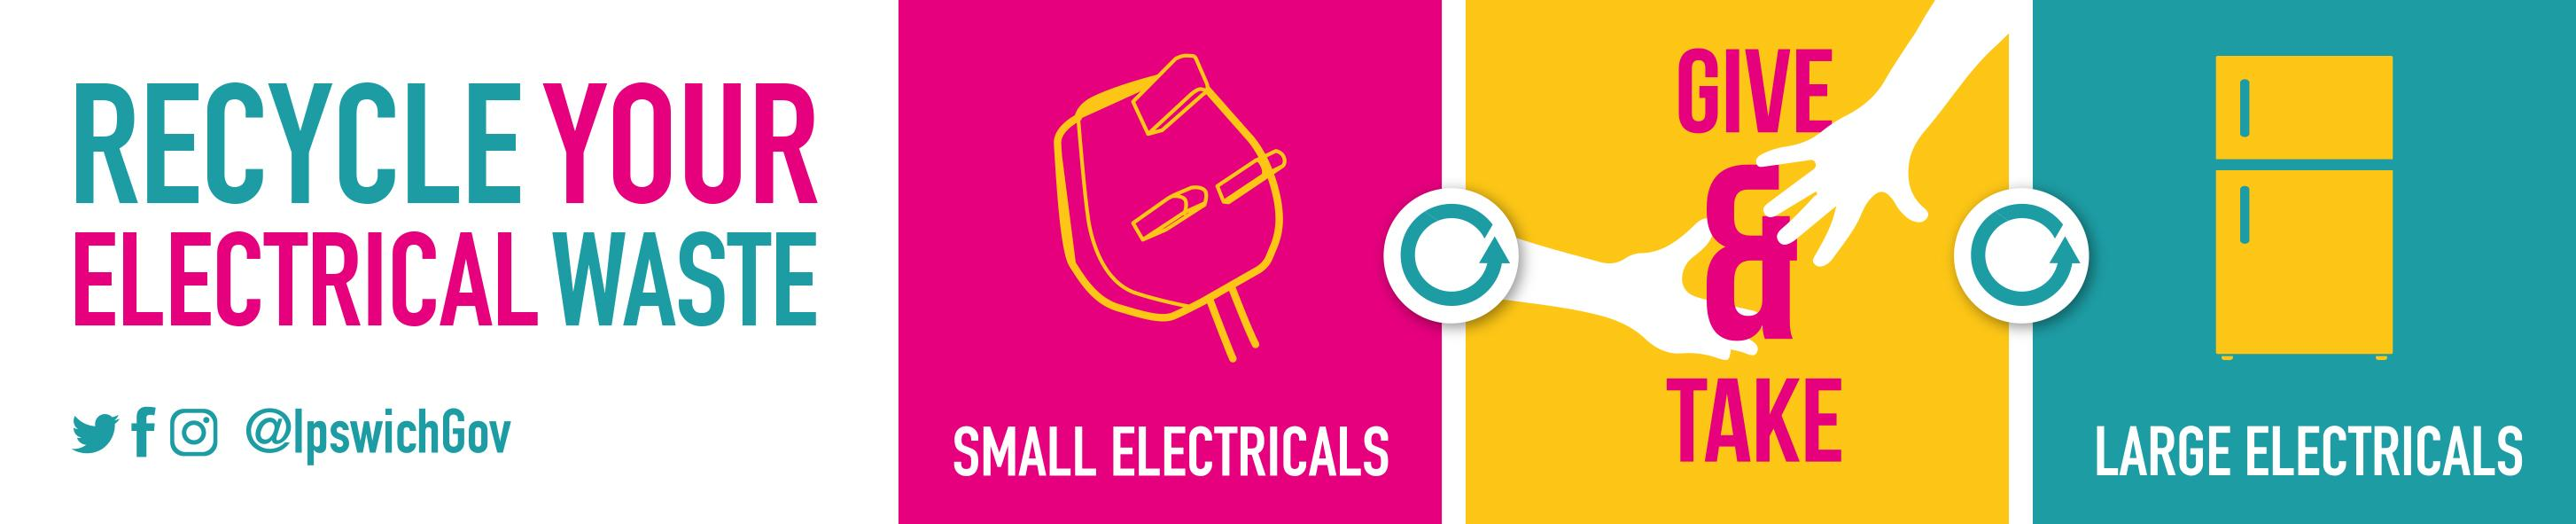 Recycle Electrical